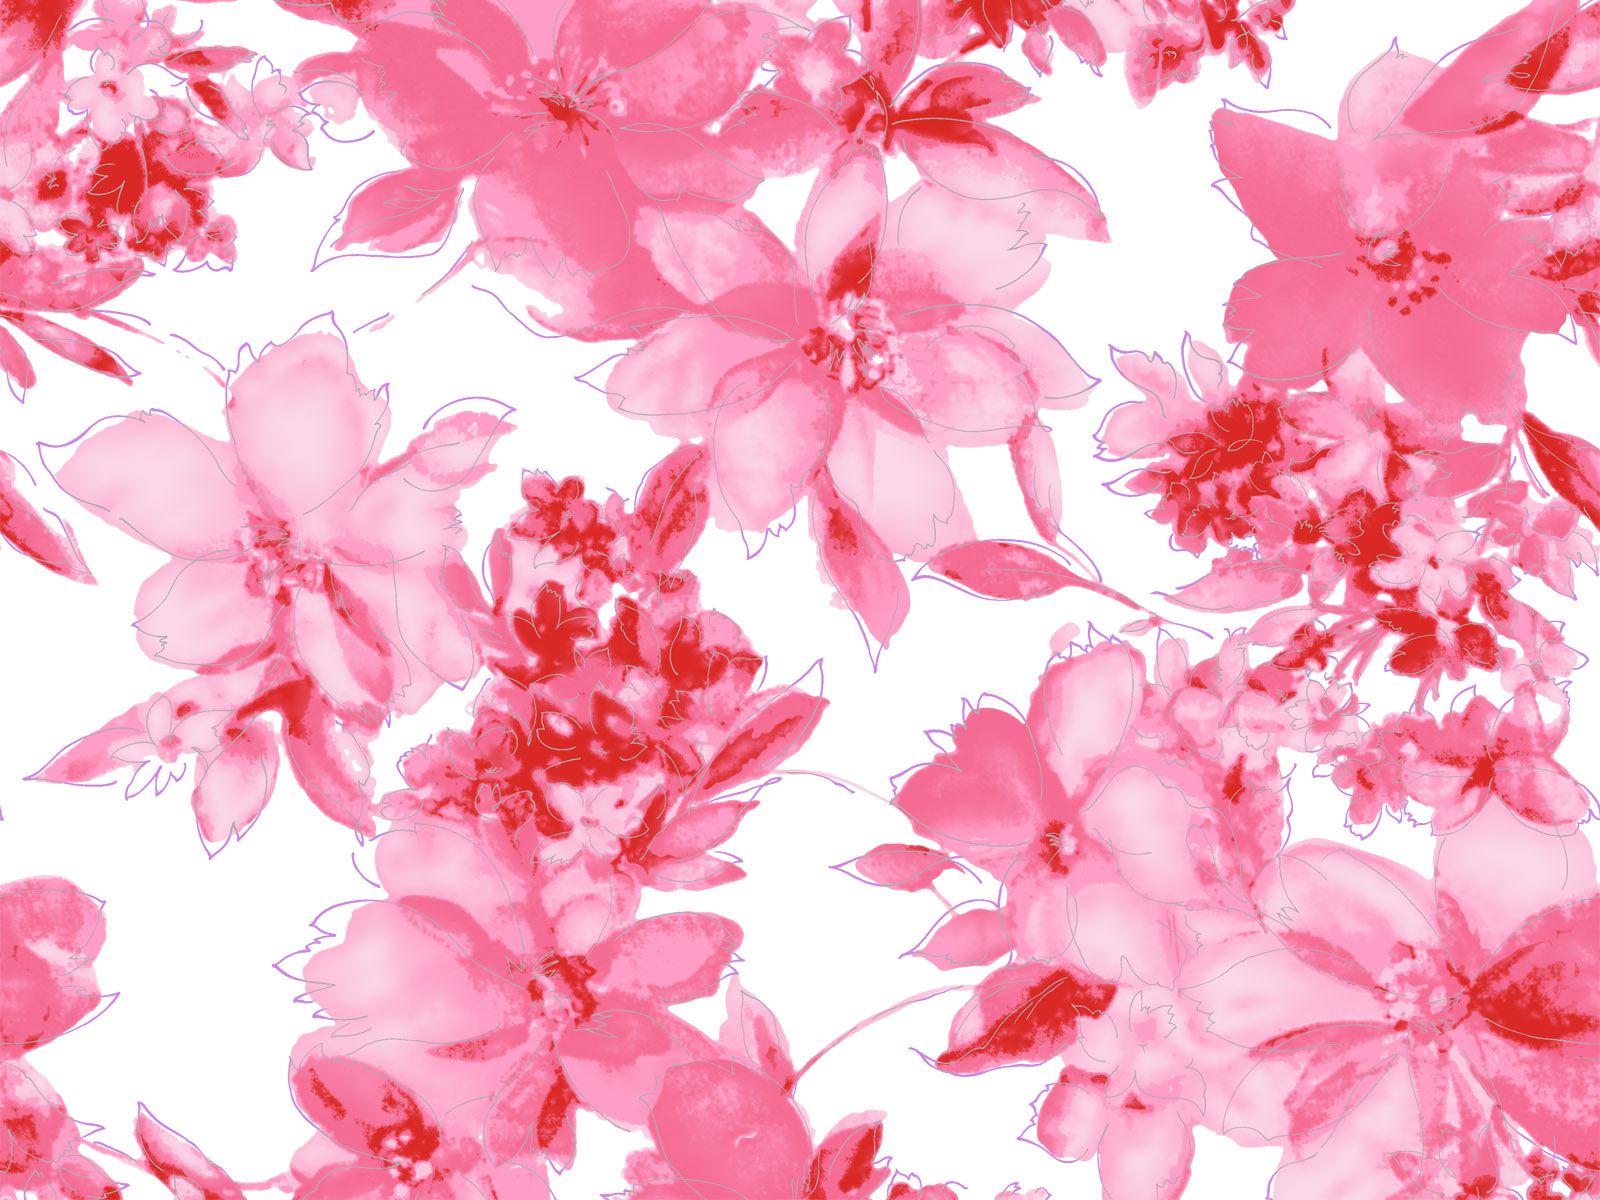 Pink flowers background 19 hd wallpaper hdflowerwallpaper pink flowers background free wallpaper mightylinksfo